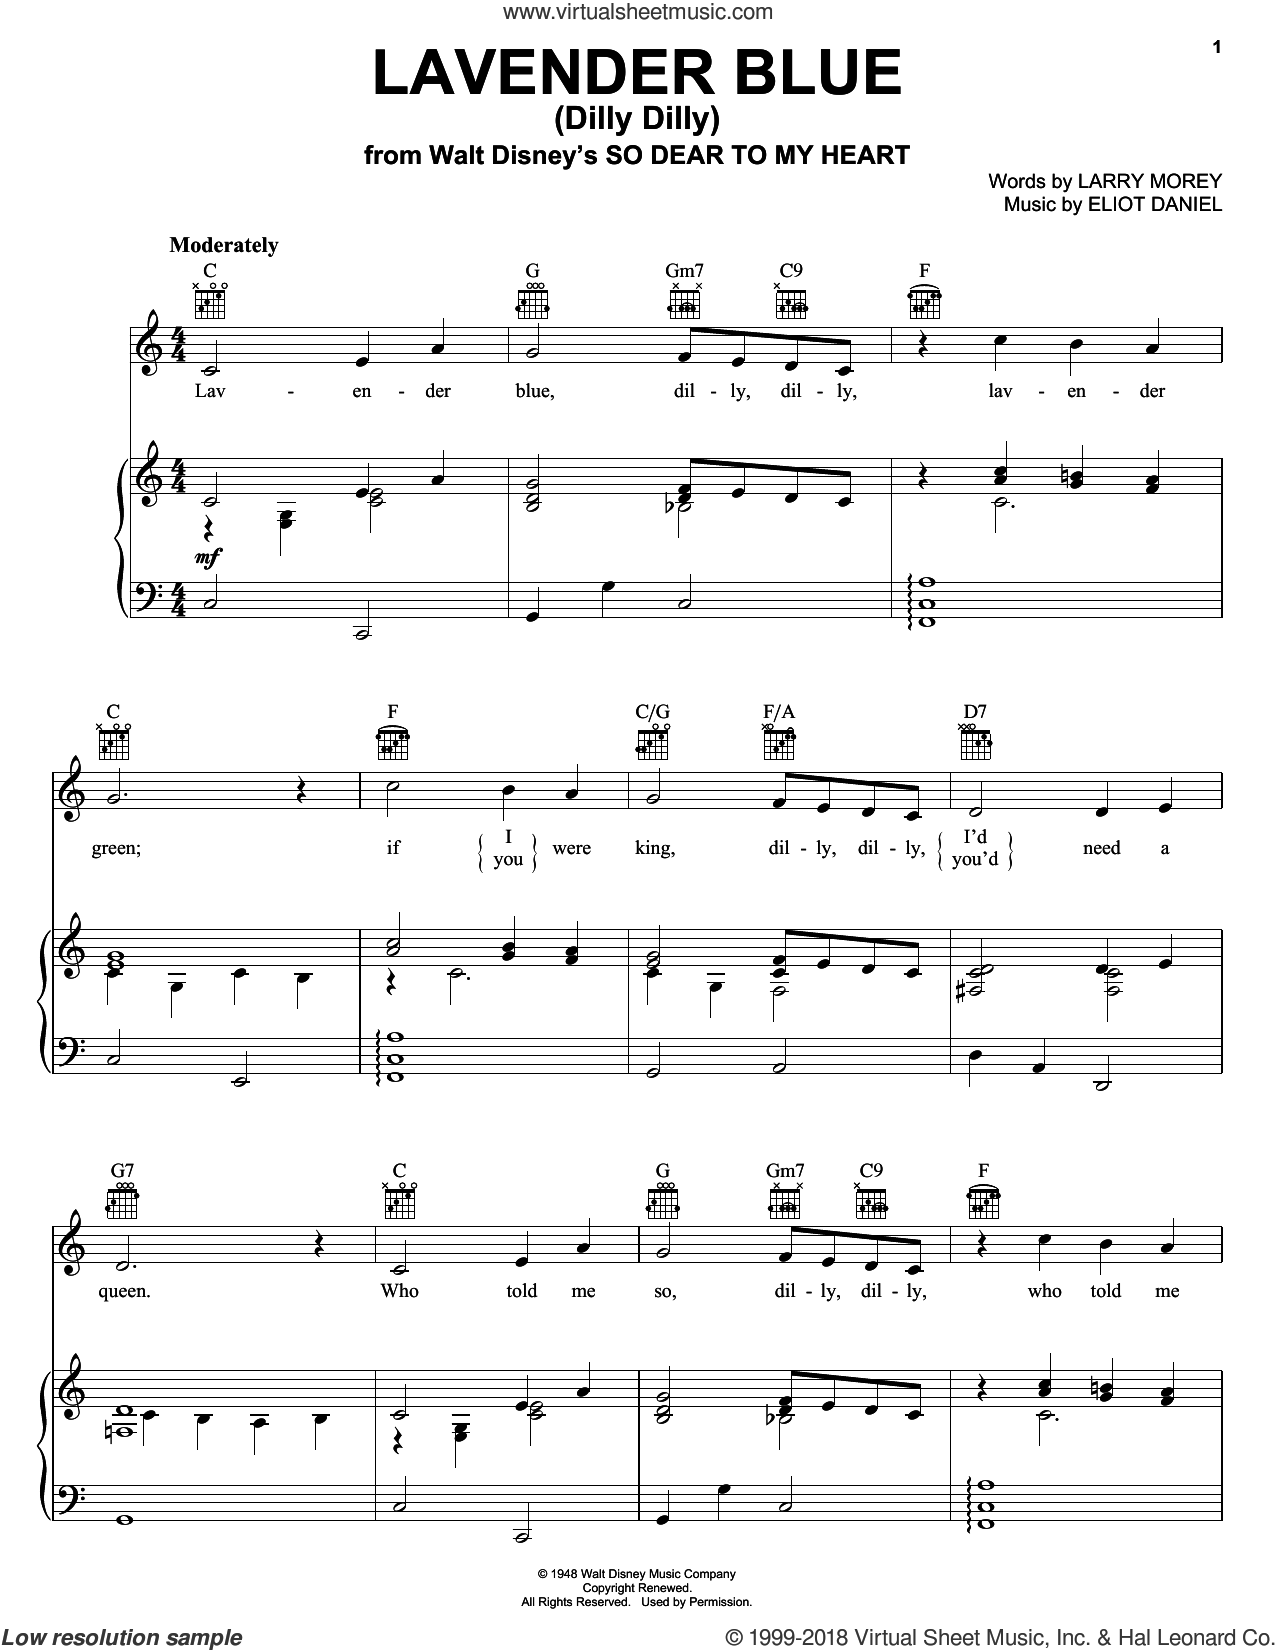 Lavender Blue (Dilly Dilly) sheet music for voice, piano or guitar by Burl Ives, Eliot Daniel and Larry Morey, intermediate skill level